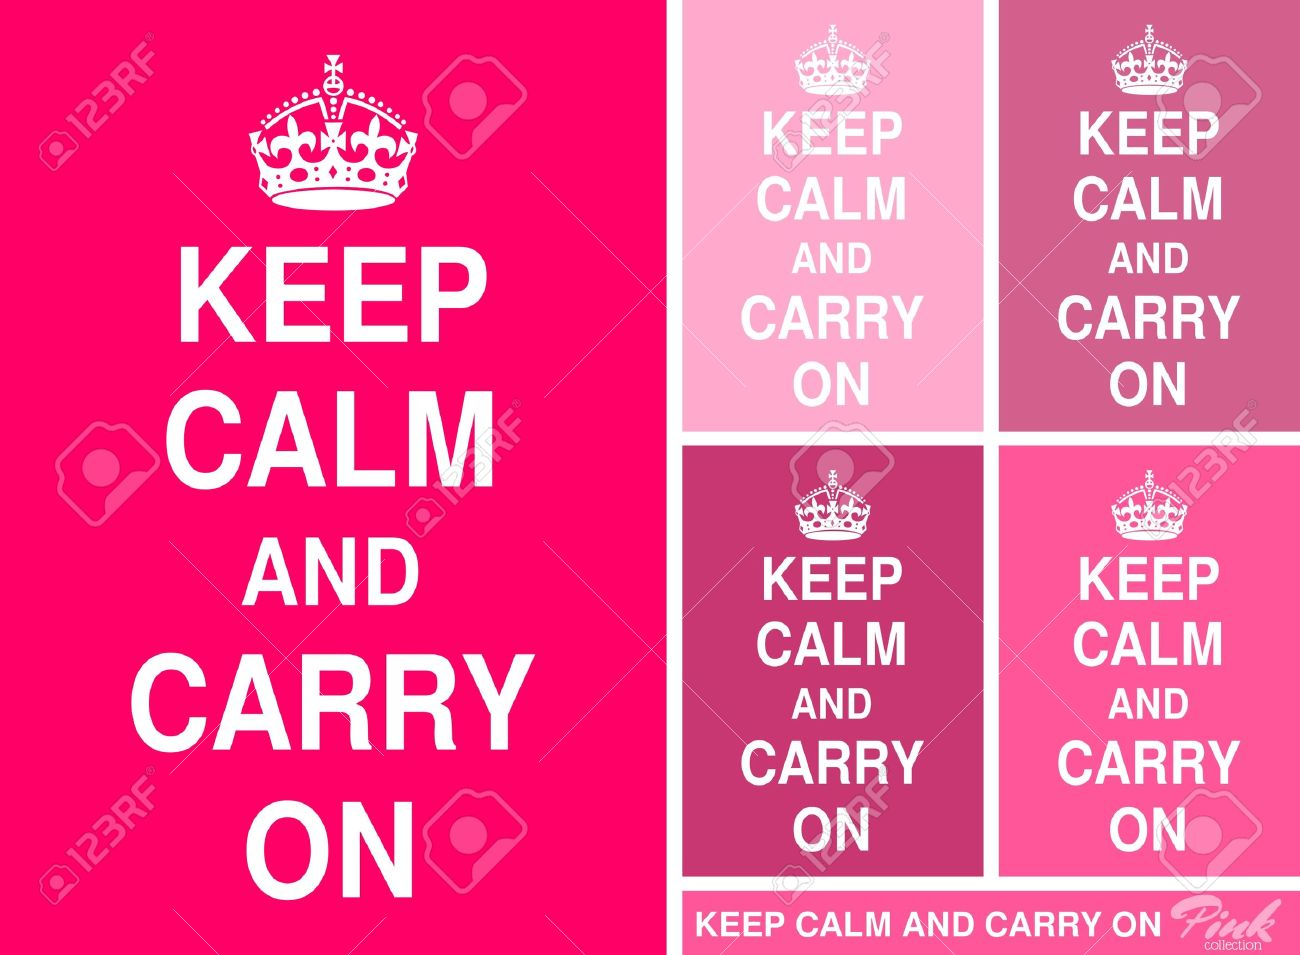 Keep Calm and Carry On posters in different shades of pink - 13987529